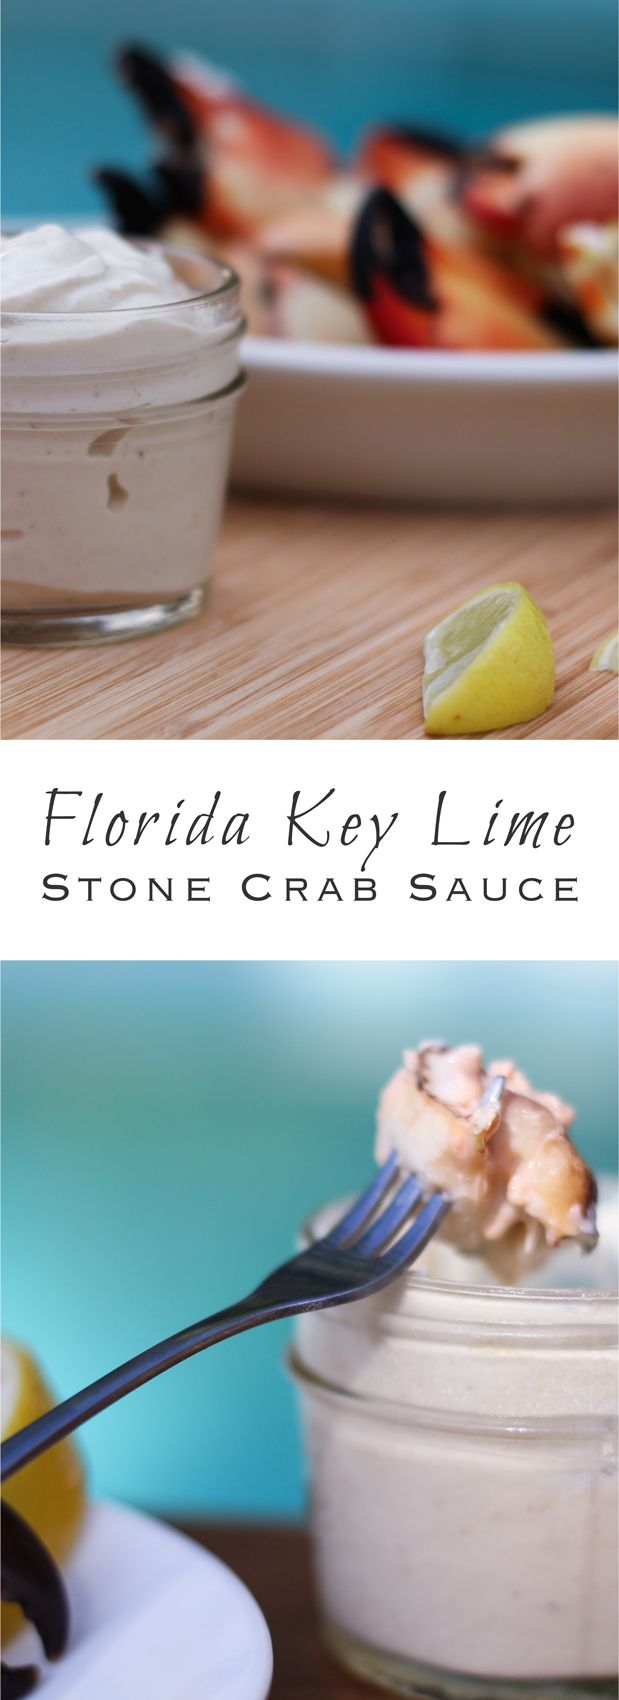 The perfect sauce for sweet, succulent stone crabs: creamy but light, made with fresh Key lime juice. Also includes instructions for cooking your freshly harvested stone crab claws!